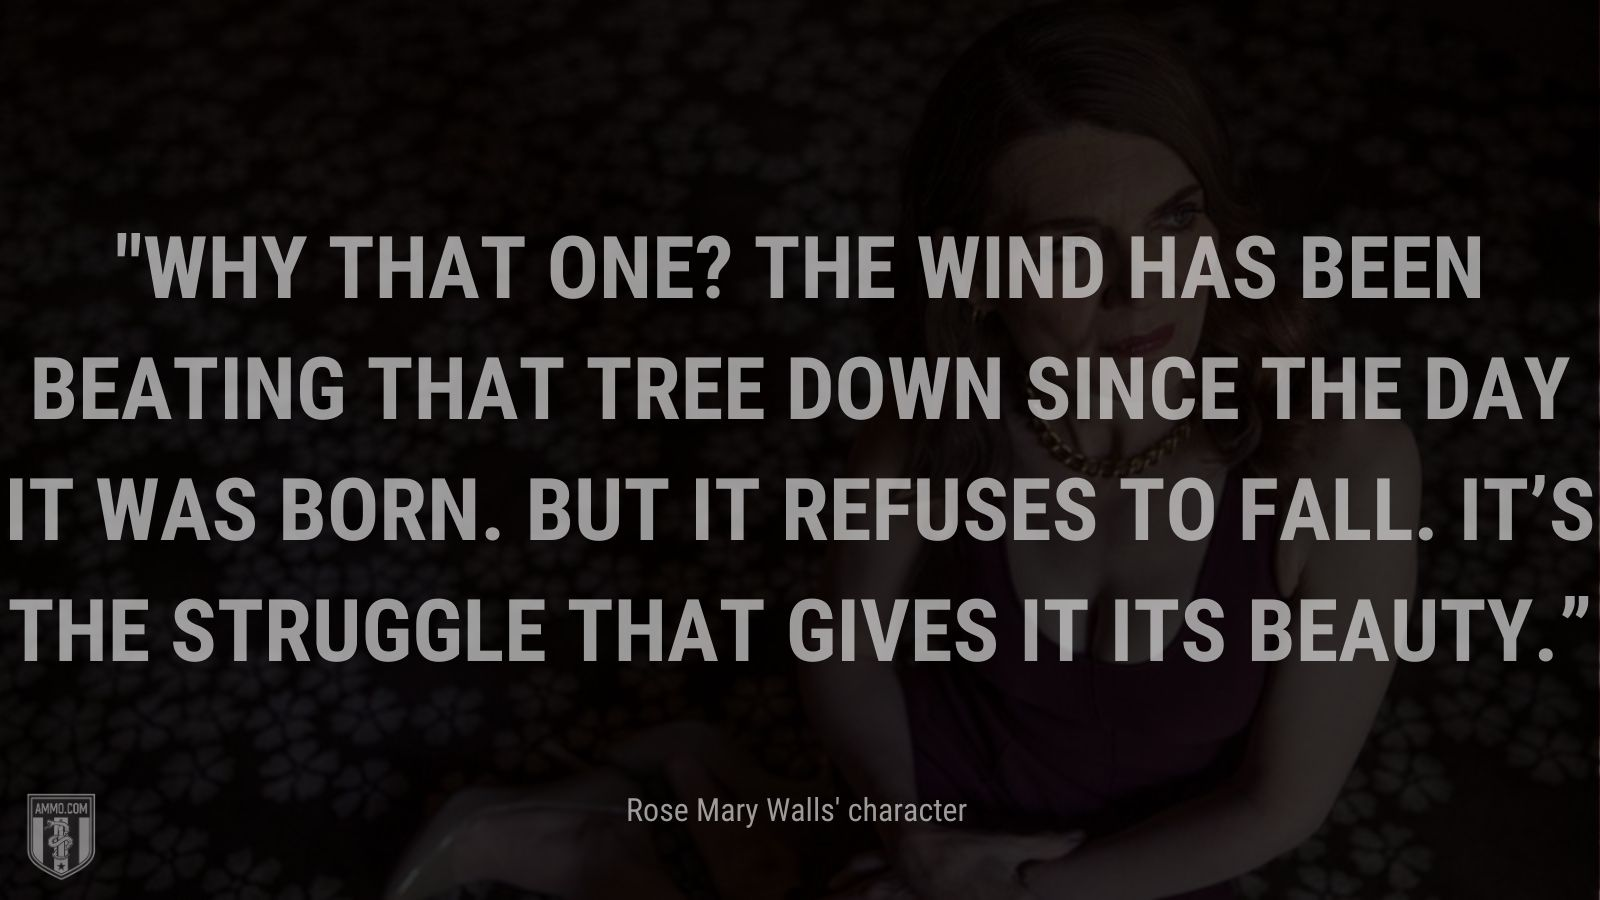 """""""Why that one? The wind has been beating that tree down since the day it was born. But it refuses to fall. It's the struggle that gives it its beauty."""" - Rose Mary Walls' character when replying to her daughter about why she chose to paint a certain tree standing tall in the desert, The Glass Castle"""